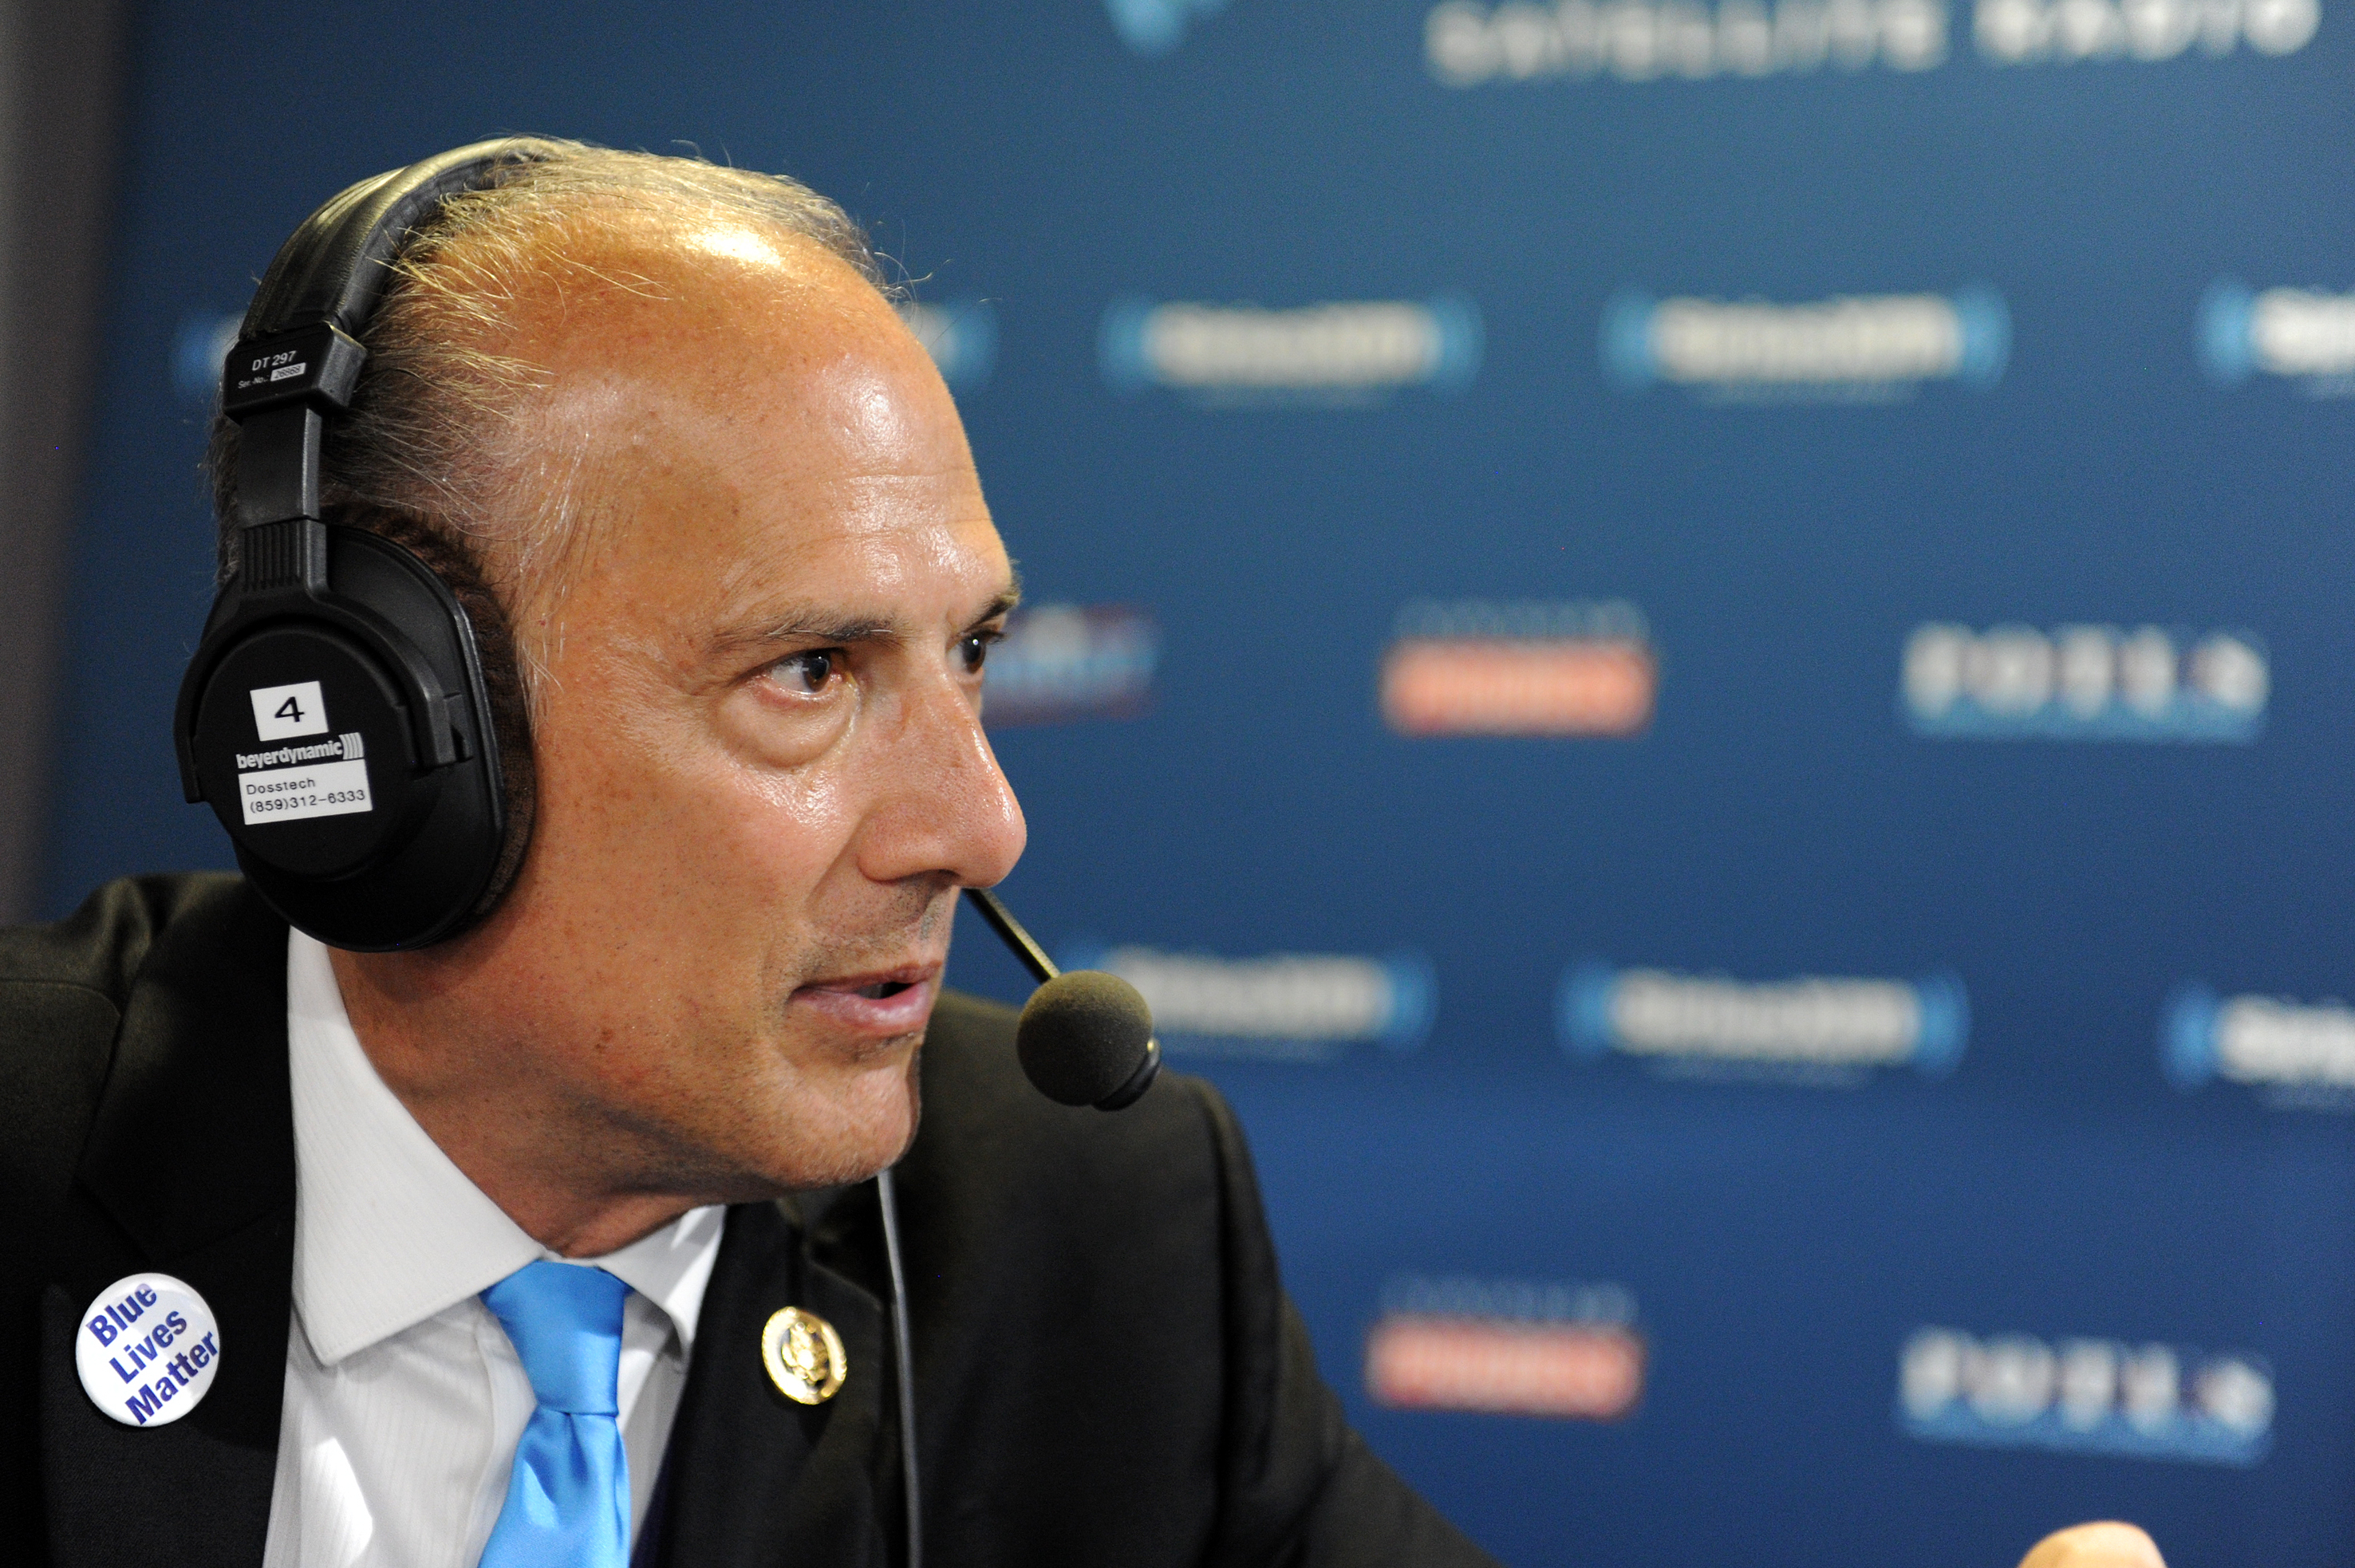 Tom Marino, Congressman of Pennsylvania, talks with Andrew Wilkow during an episode of The Wilkow Majority on SiriusXM Patriot at Quicken Loans Arena on July 21, 2016 in Cleveland, Ohio. (Photo by Ben Jackson/Getty Images for SiriusXM)